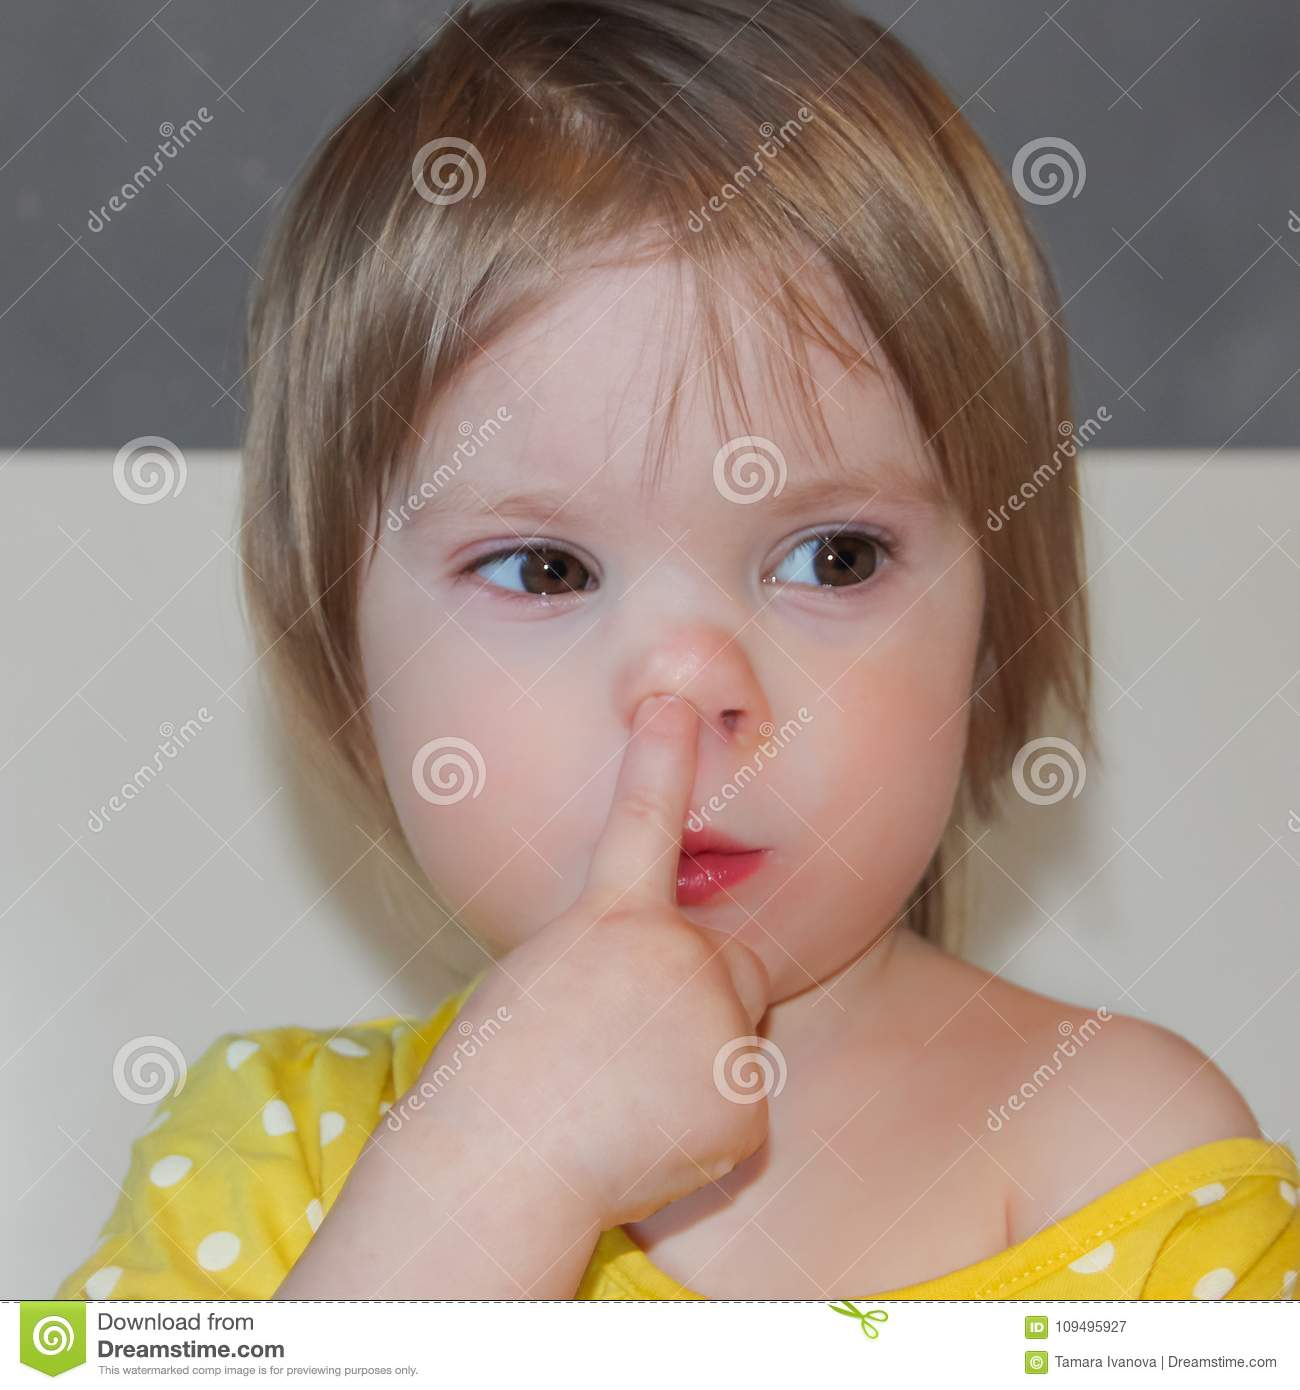 The Child Is Picking His Nose A Little Girl A Bad Habit